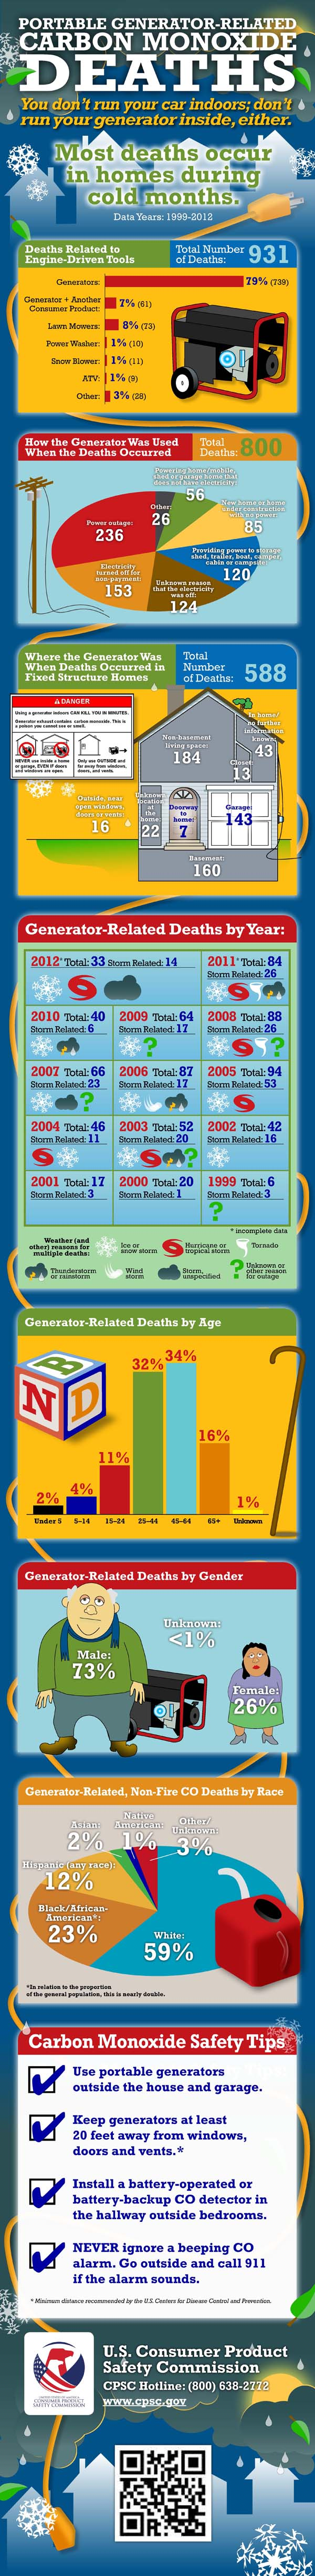 portable generator death information